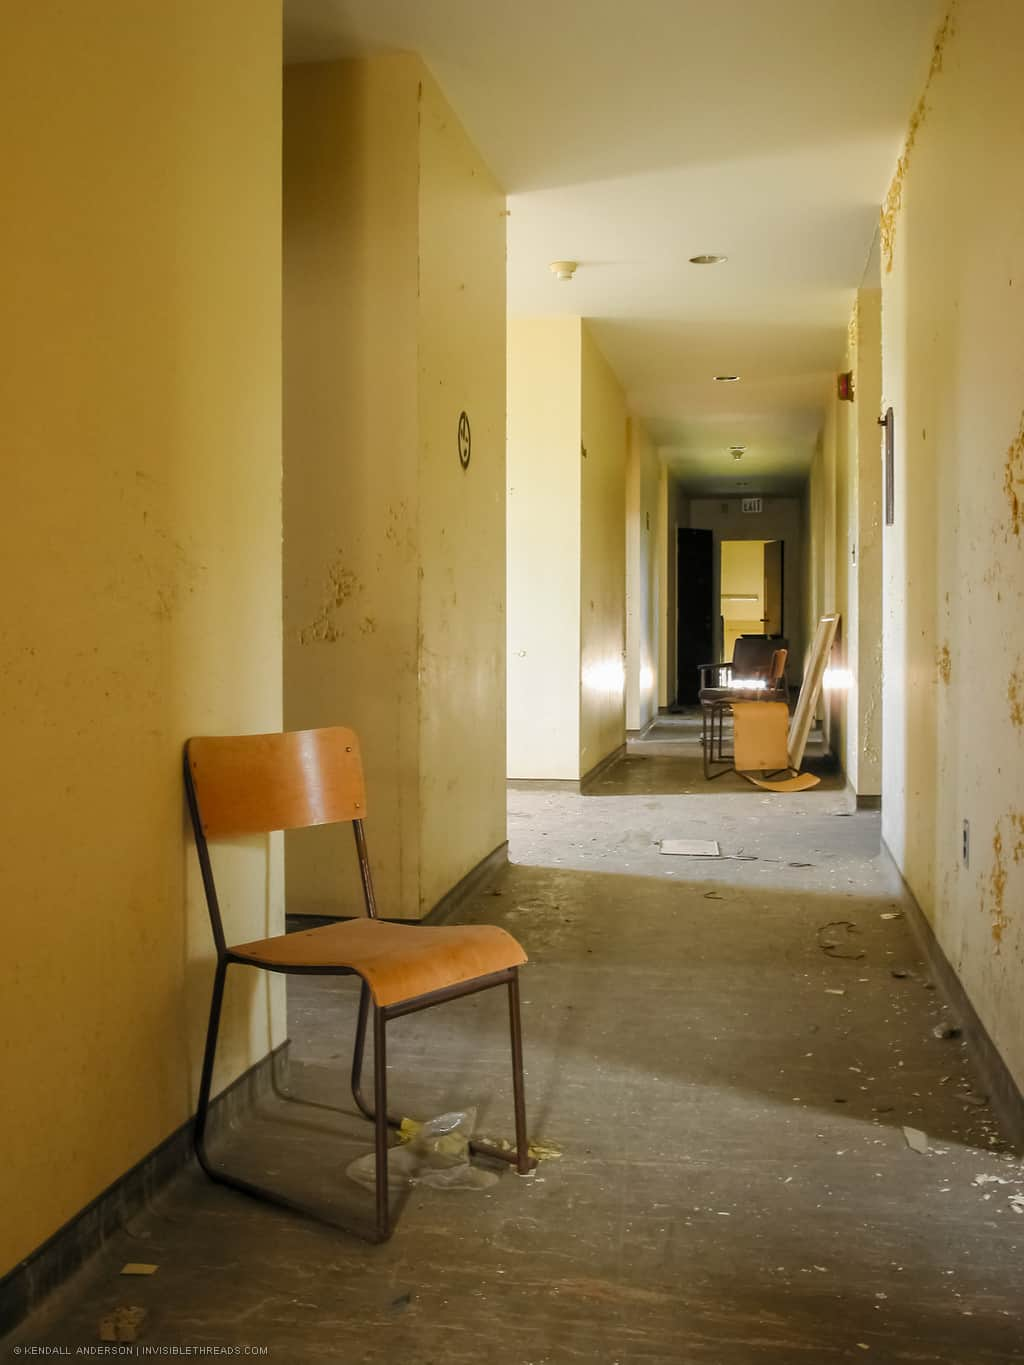 A chair is on the floor in a long yellow hallway, with additional chairs piled in the distance. The floor has debris on it and the paint on the walls is just beginning to show signs of water damage and peeling.